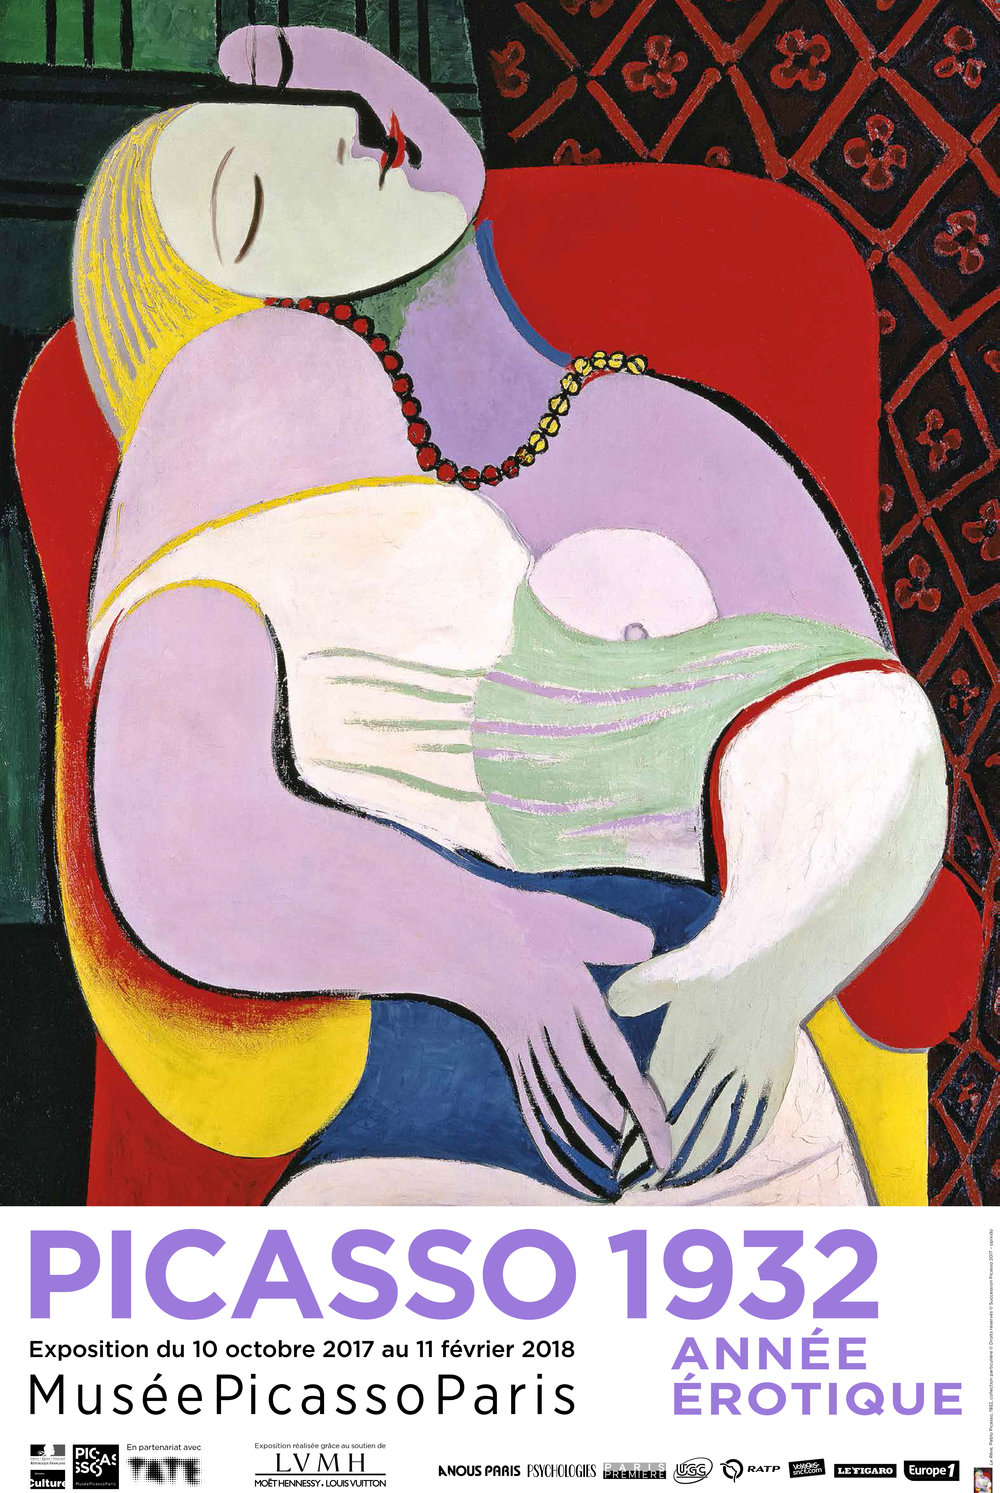 Exhibition Poster for Picasso 1932. Image courtesy of the Picasso Museum.